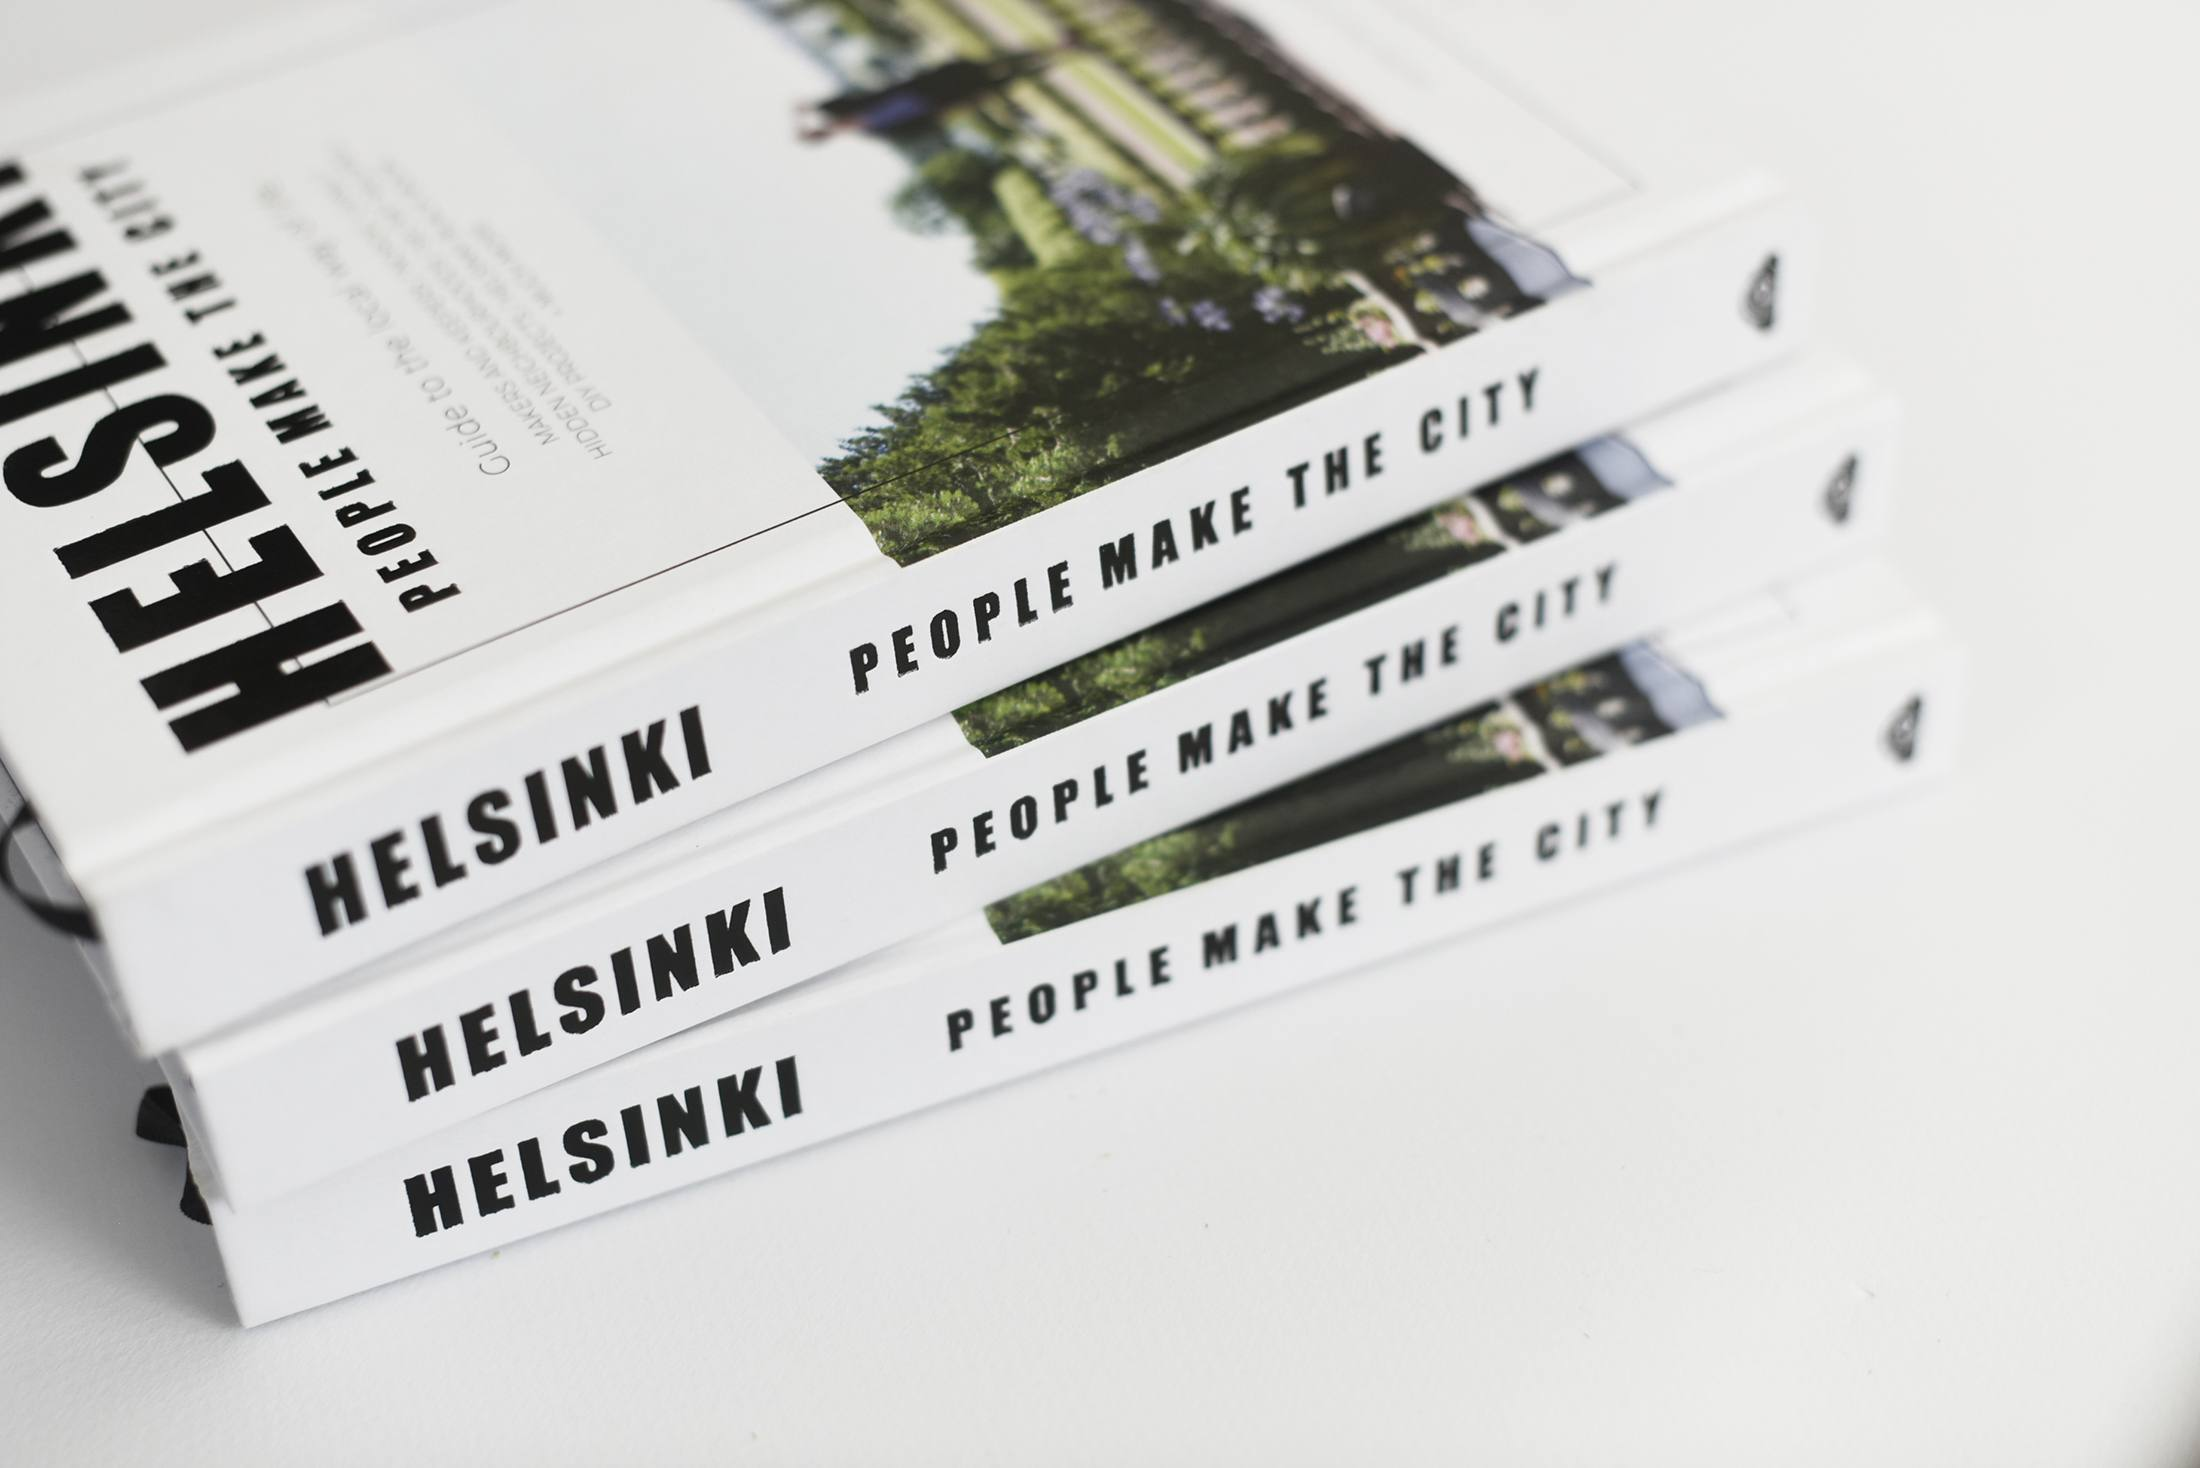 Helsinki people make the city